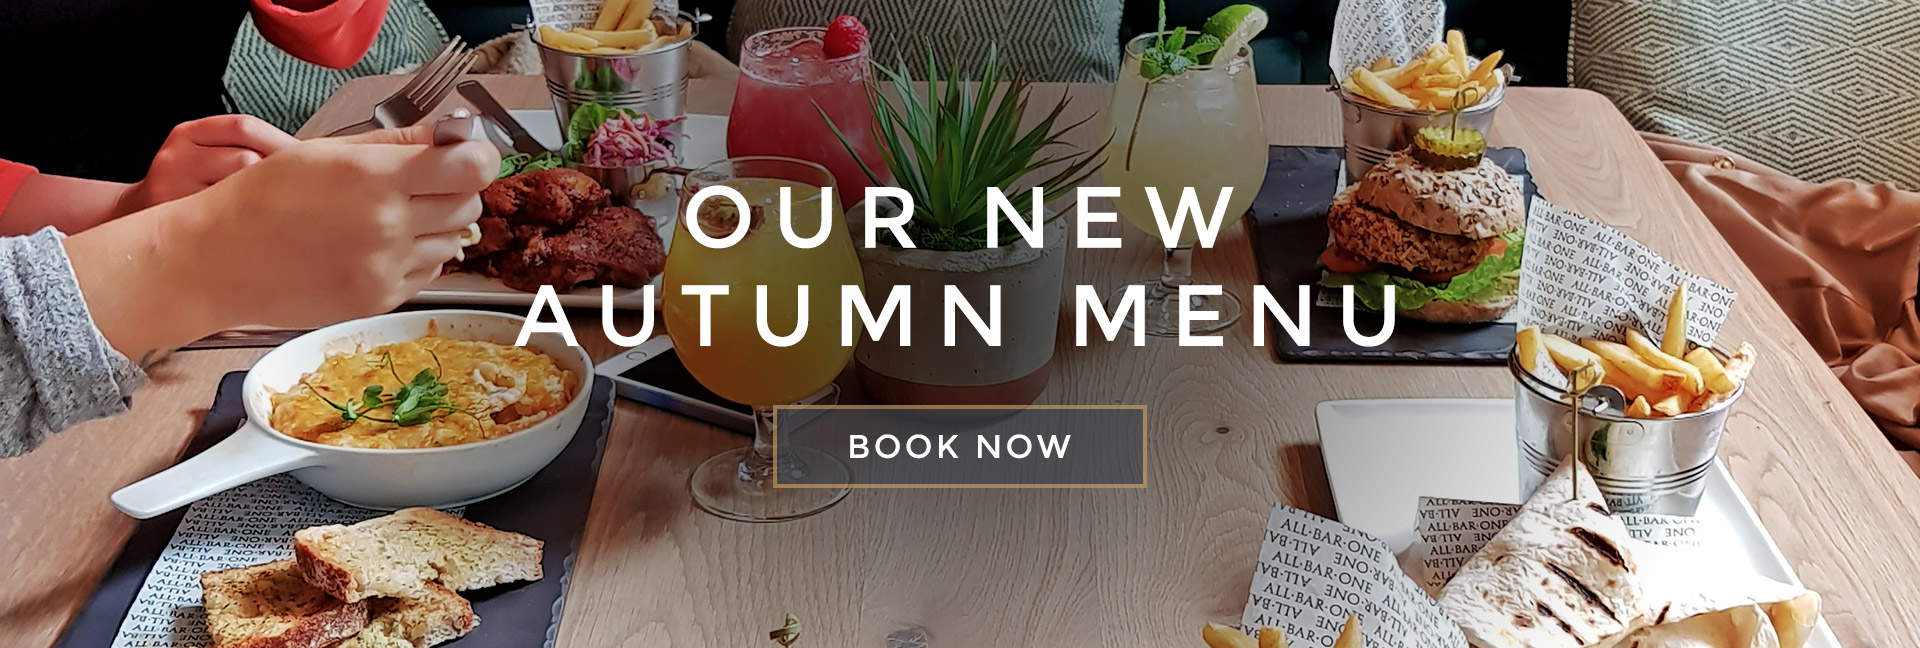 Our new Autumn menu at All Bar One Trafford Centre - Book now